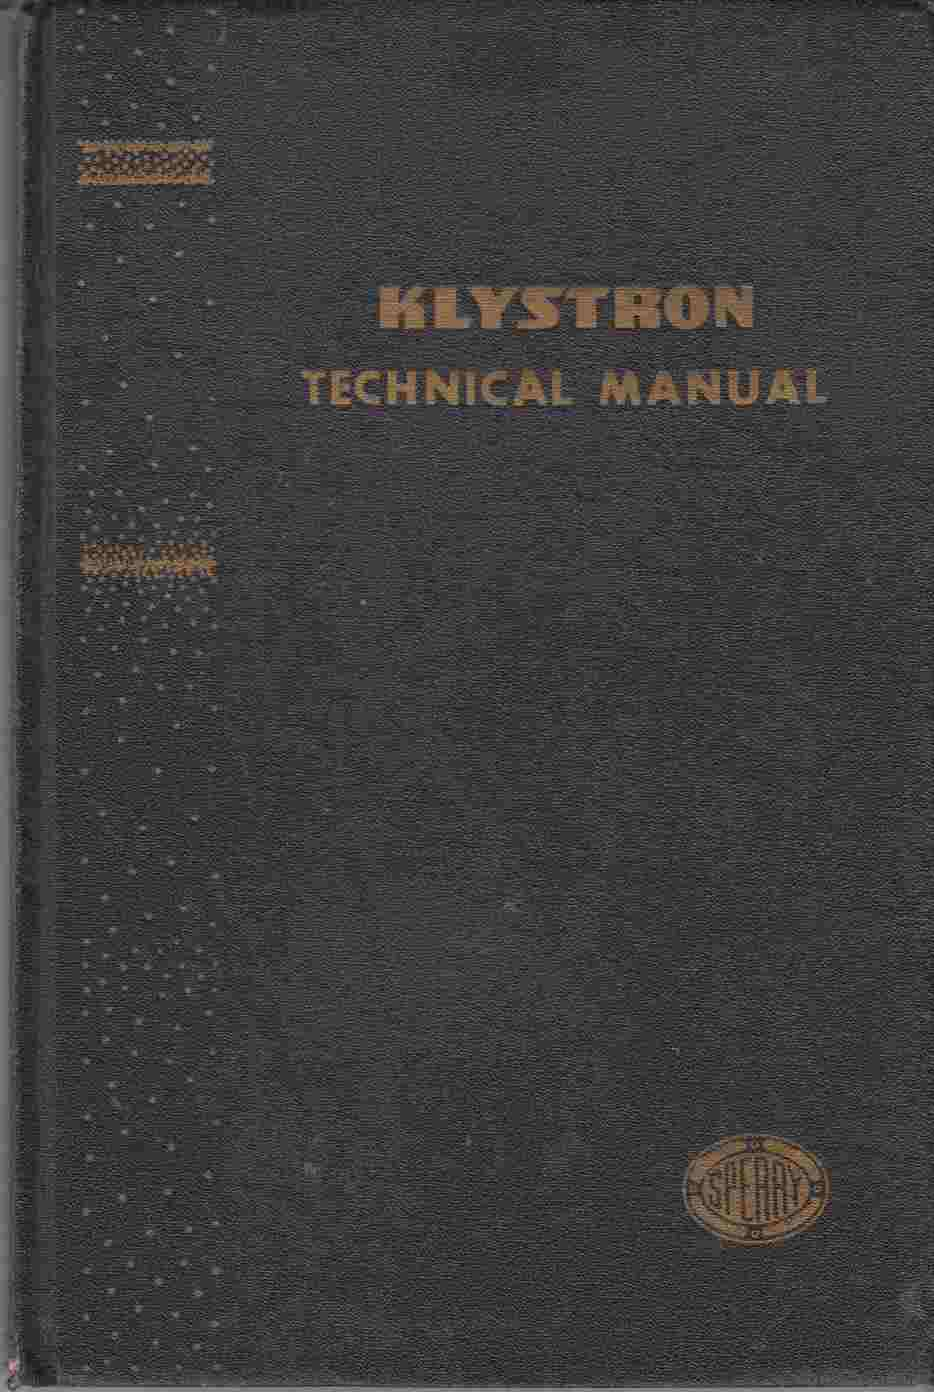 Image for Klystron Technical Manual